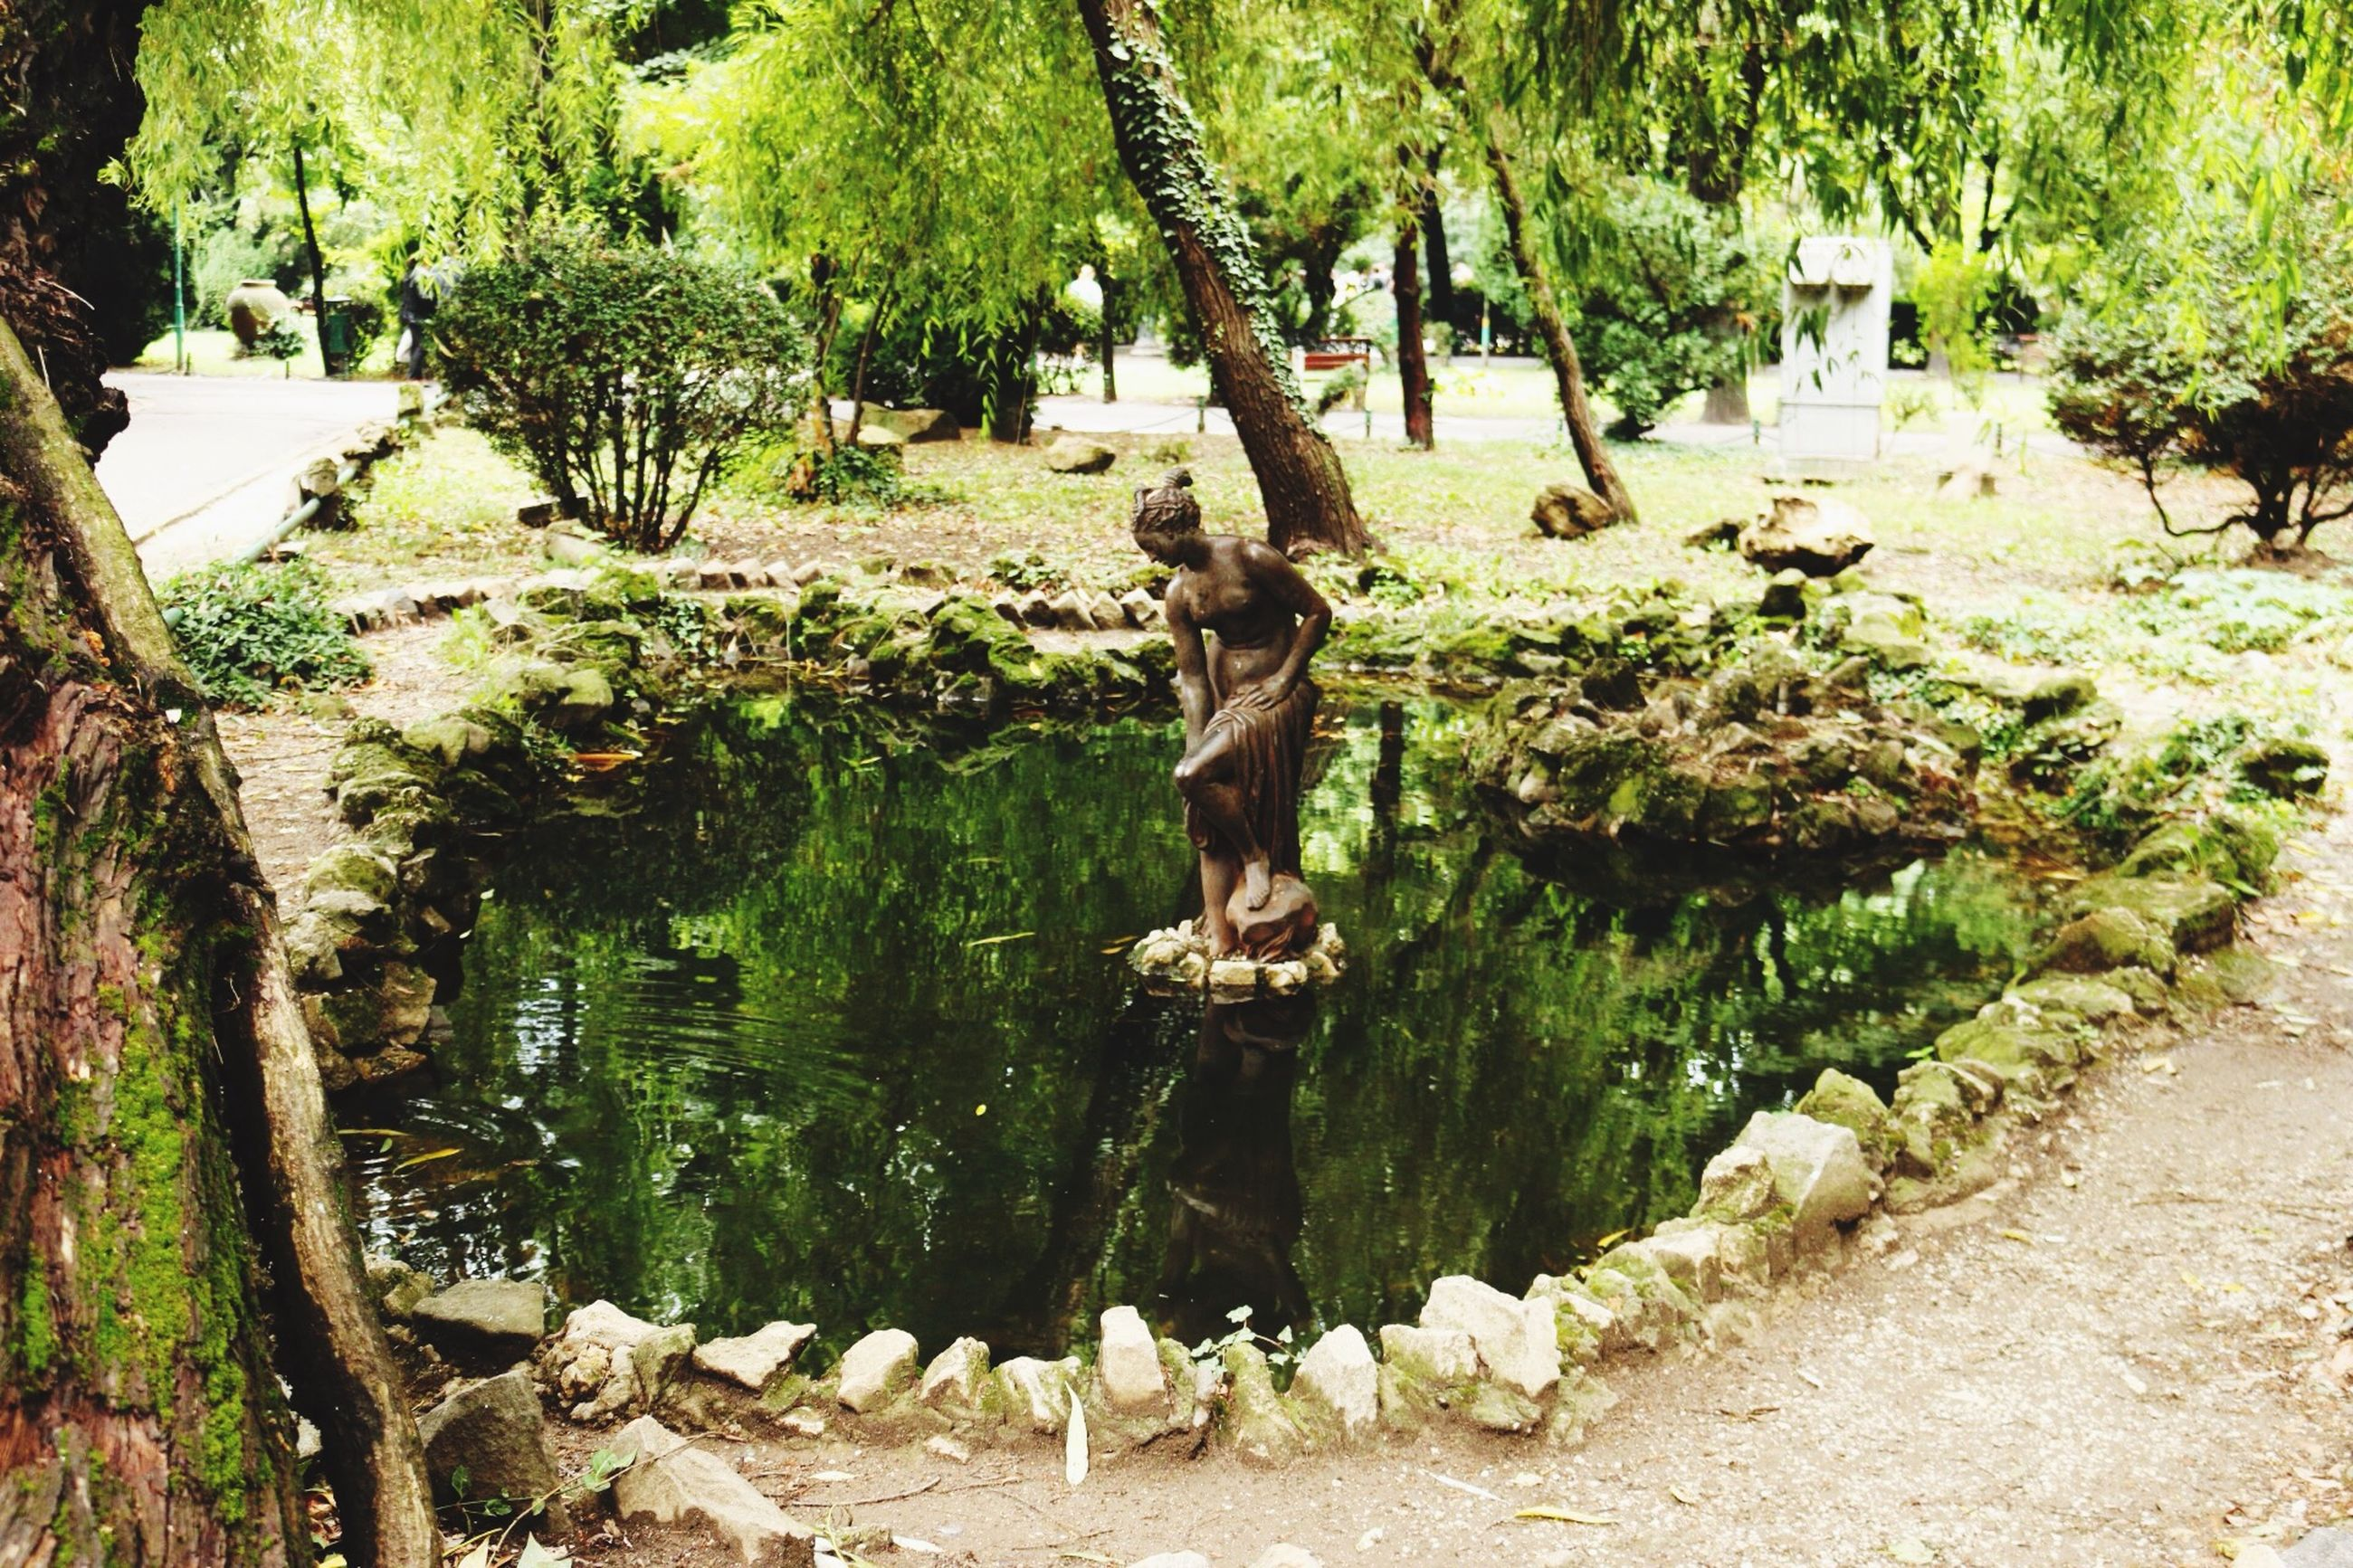 tree, water, growth, tranquility, nature, green color, park - man made space, beauty in nature, tranquil scene, plant, day, pond, outdoors, scenics, tree trunk, rock - object, forest, no people, sunlight, leaf